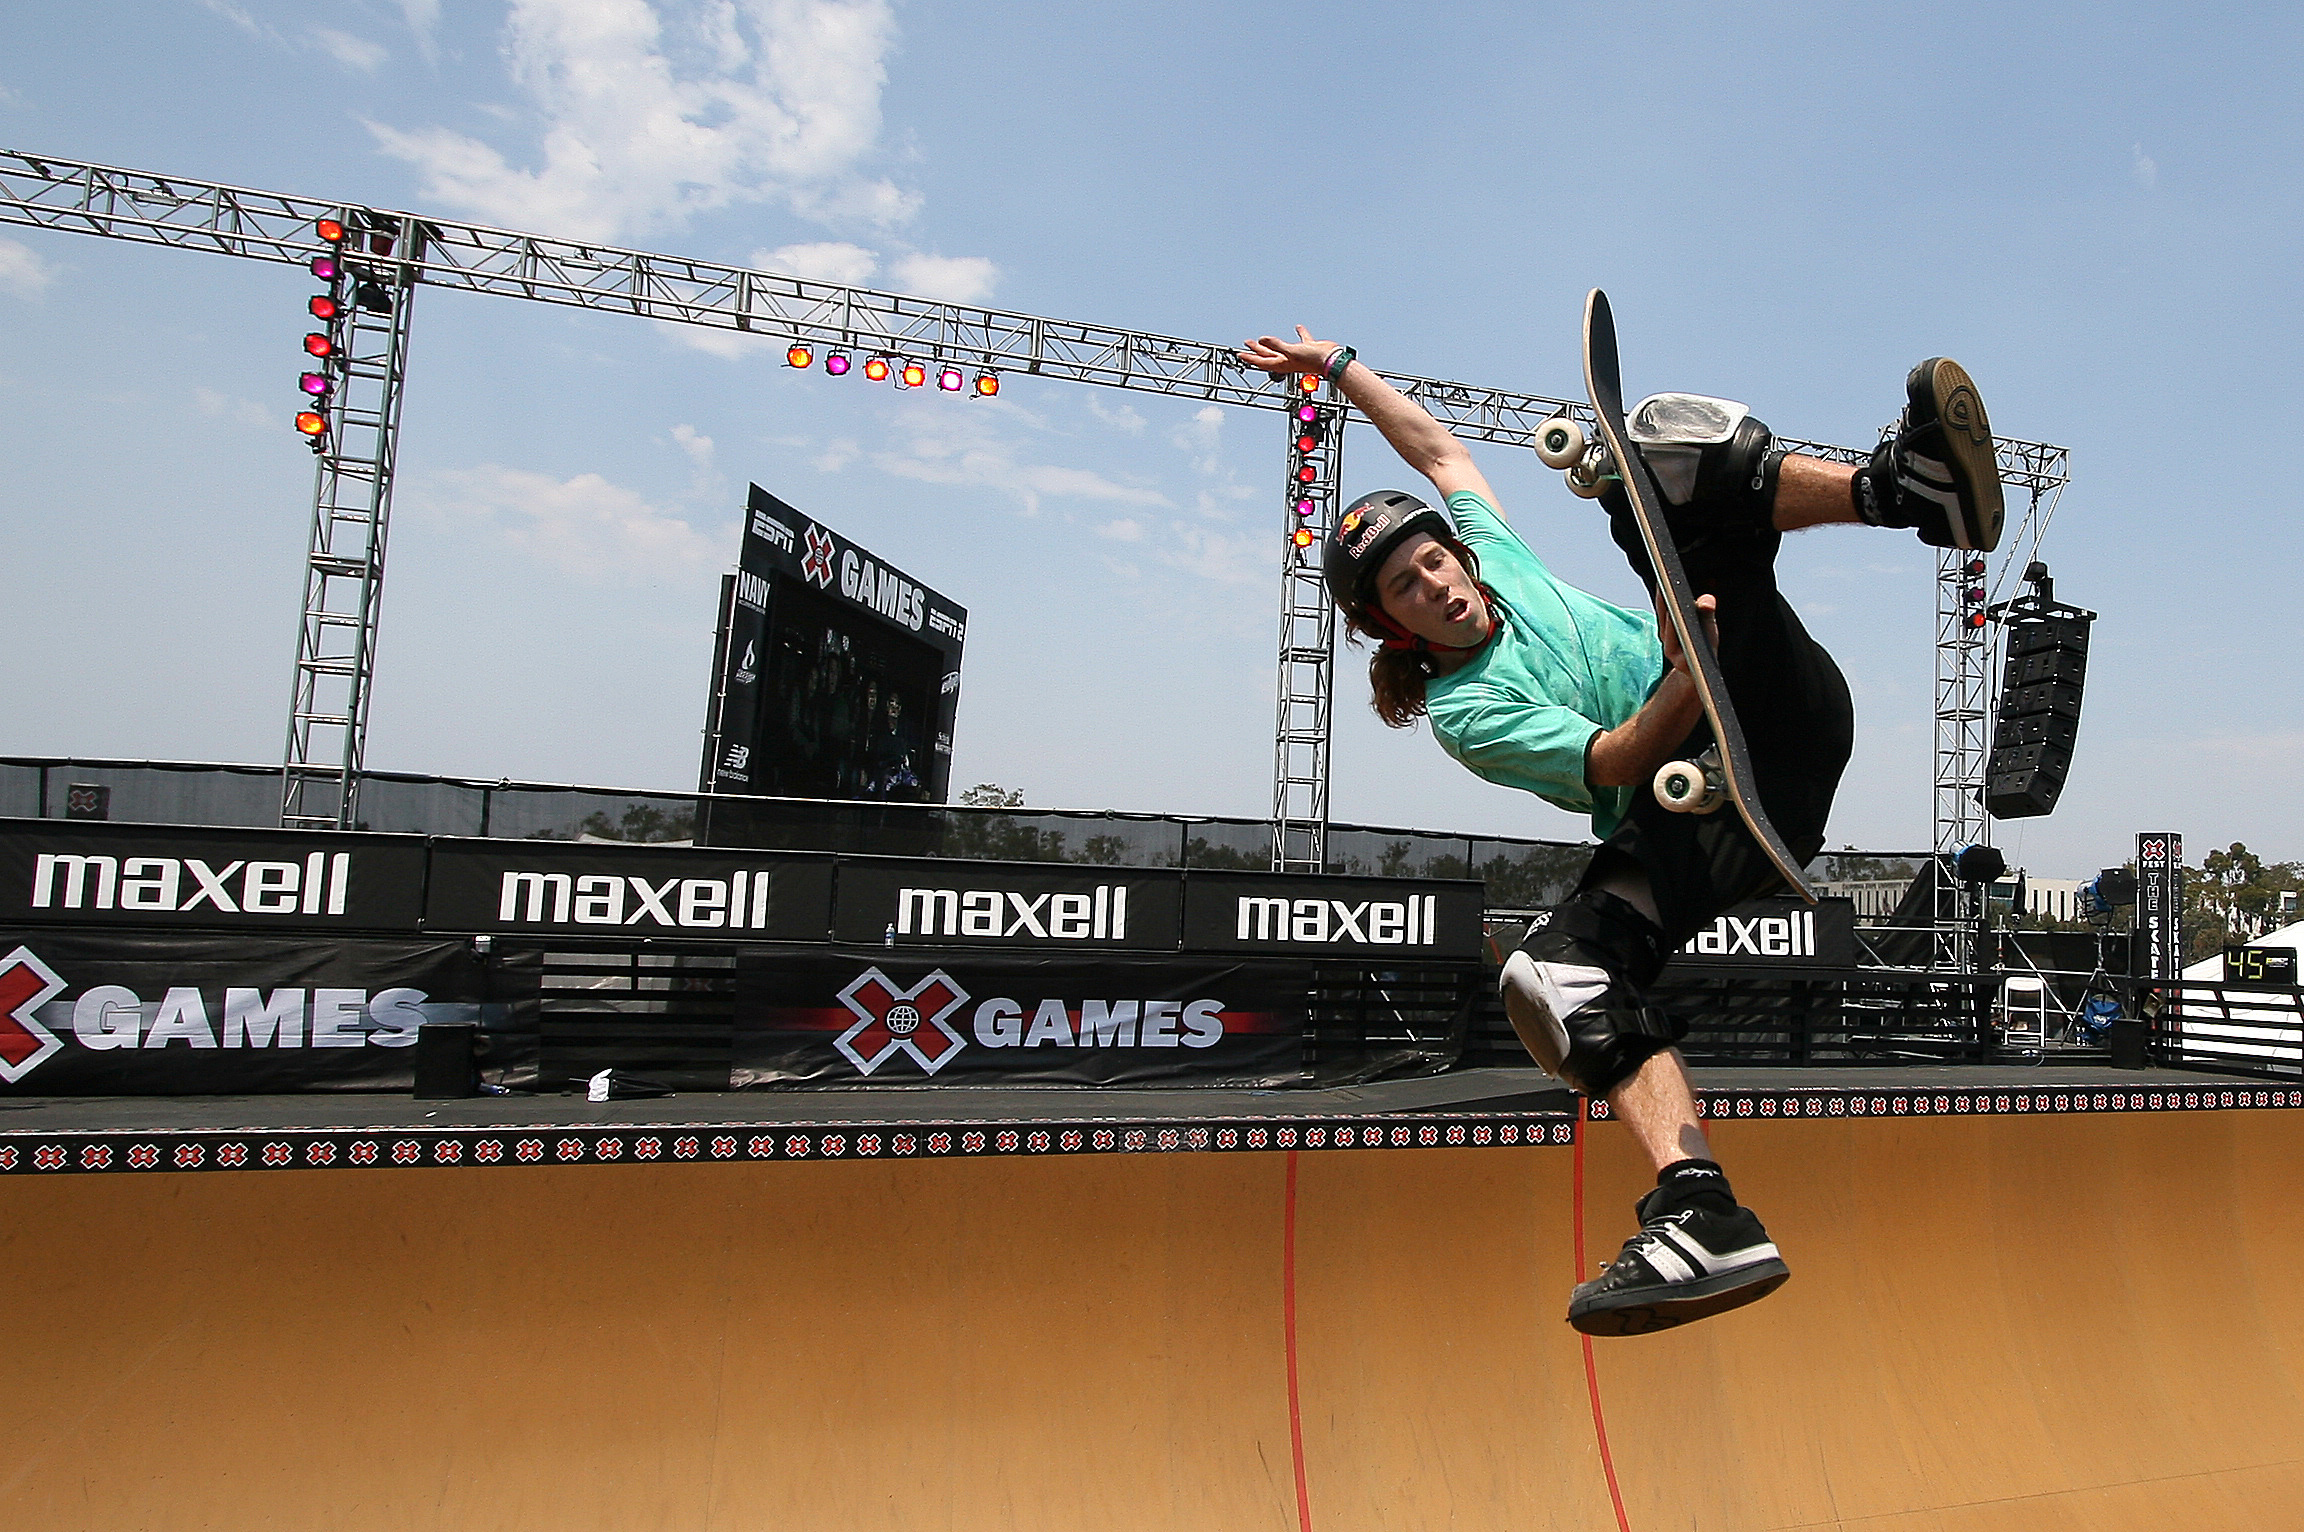 Skate Boarder Shaun White during the skate boarding event at the X games at the Home Depot Center in Los Angeles. Icon Sports Wire—Corbis via Getty Images